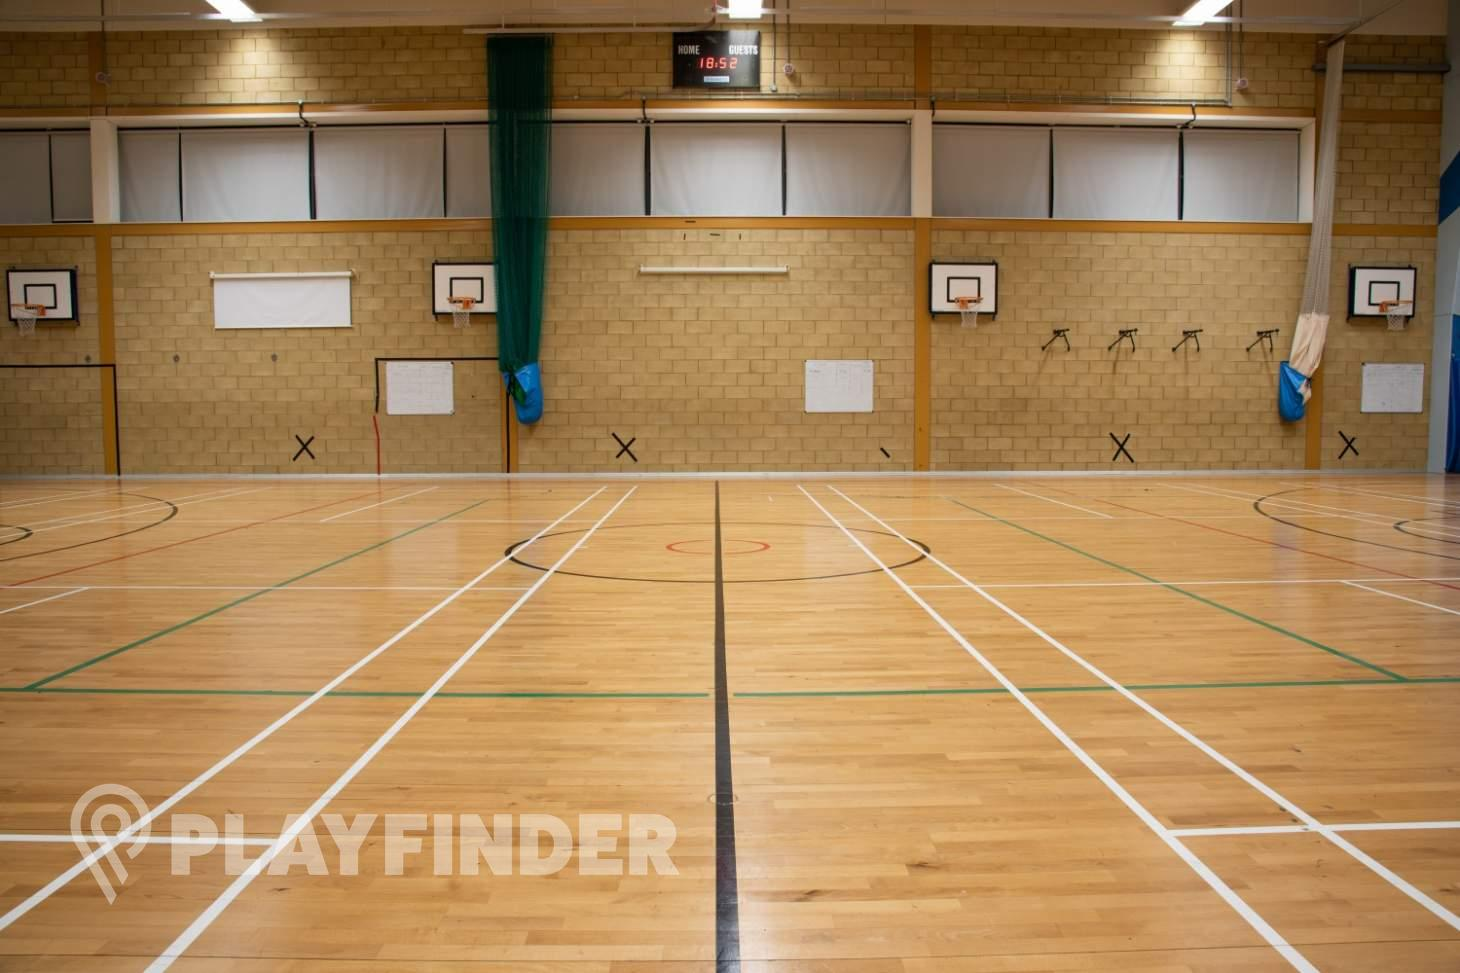 The Petchey Academy Sports Club Indoor badminton court